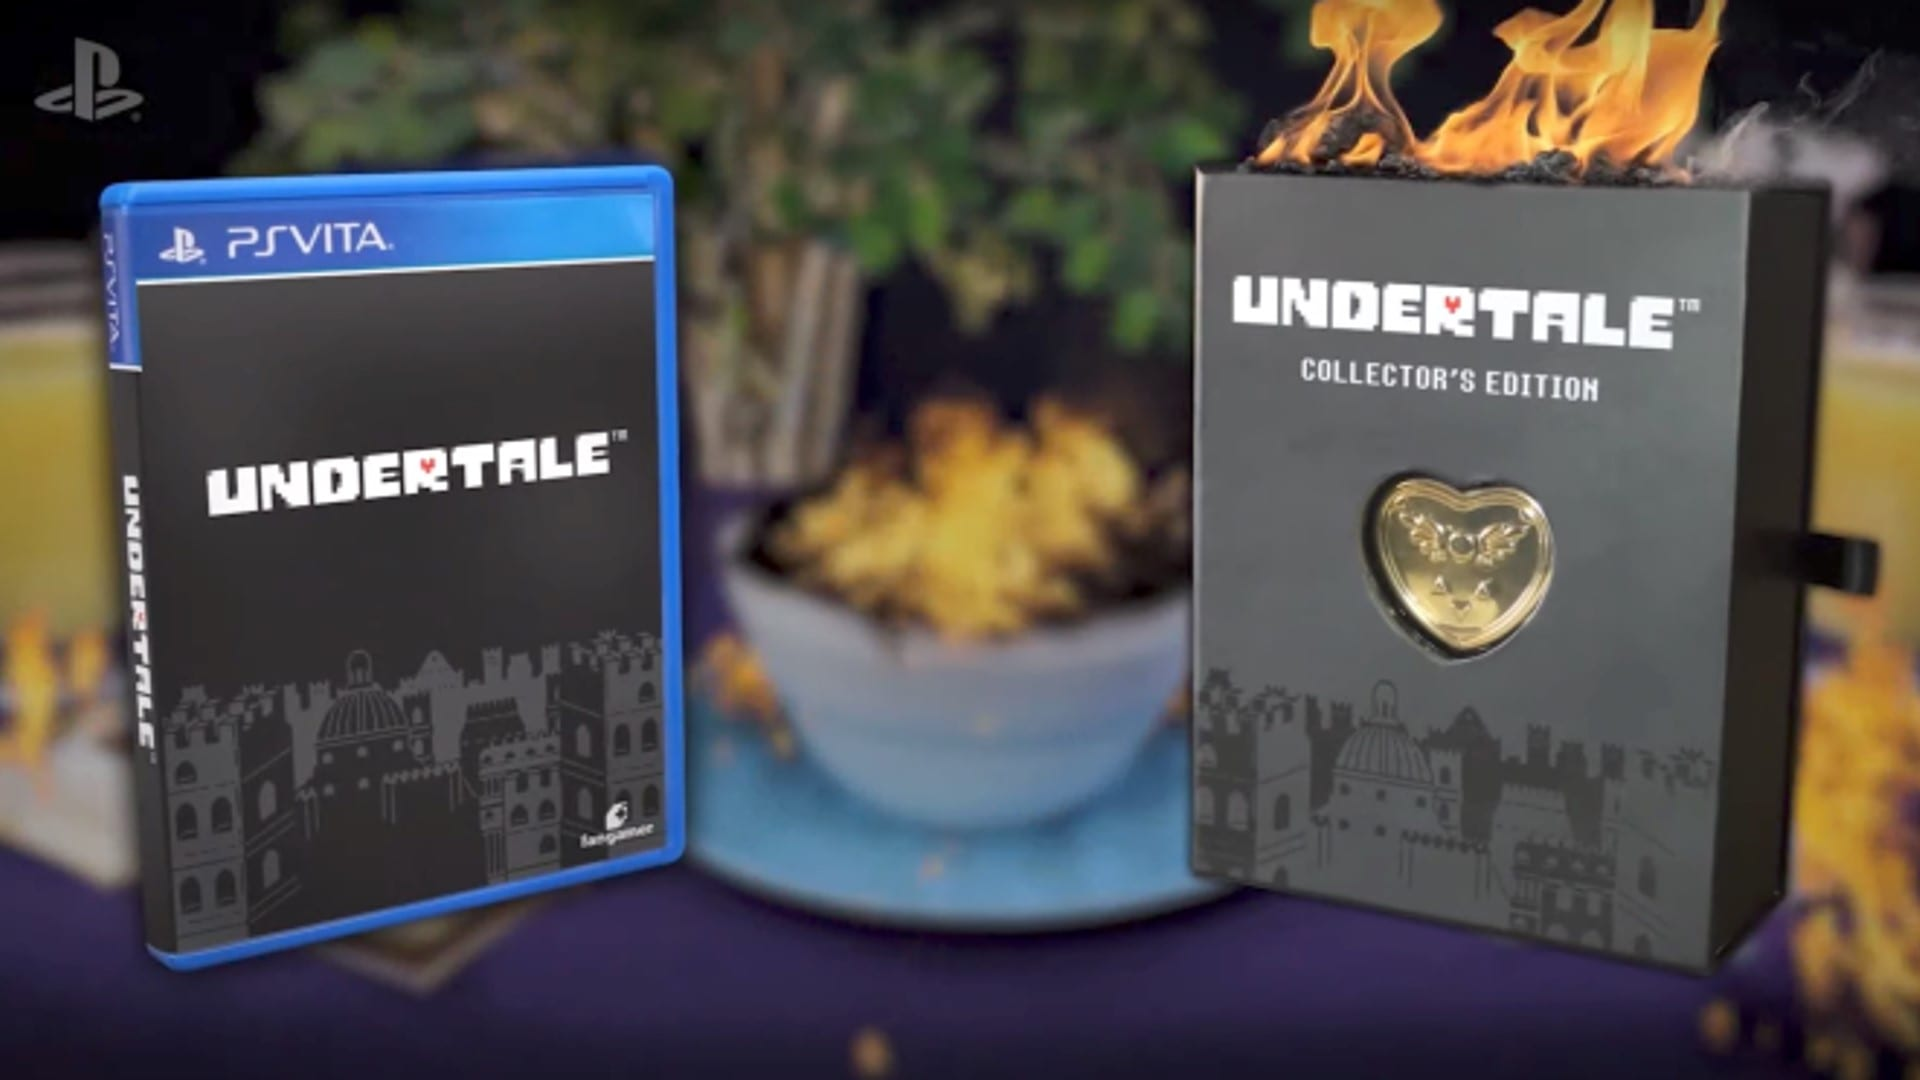 Undertale is Coming to the Playstation 4 and PS Vita